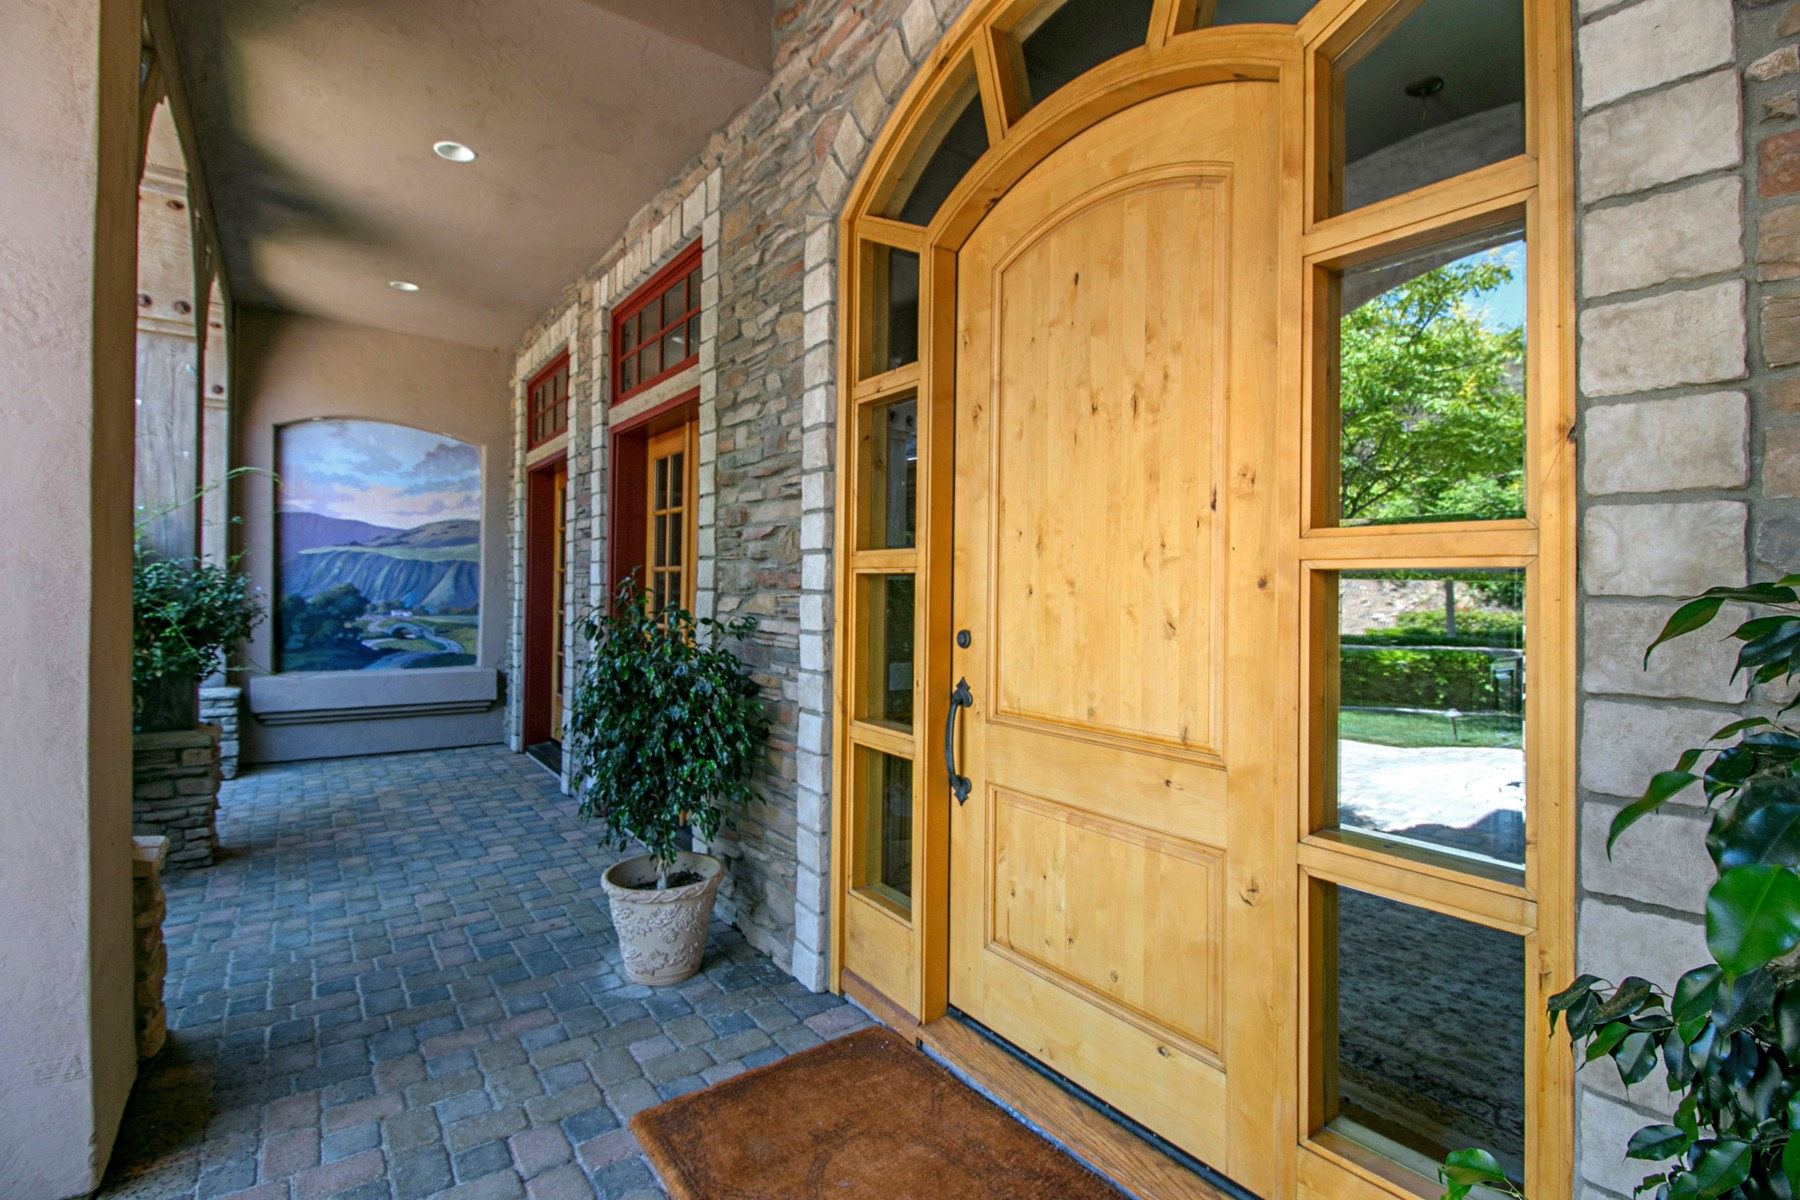 Additional photo for property listing at 14360 Cascade Crossing  Poway, California 92064 United States